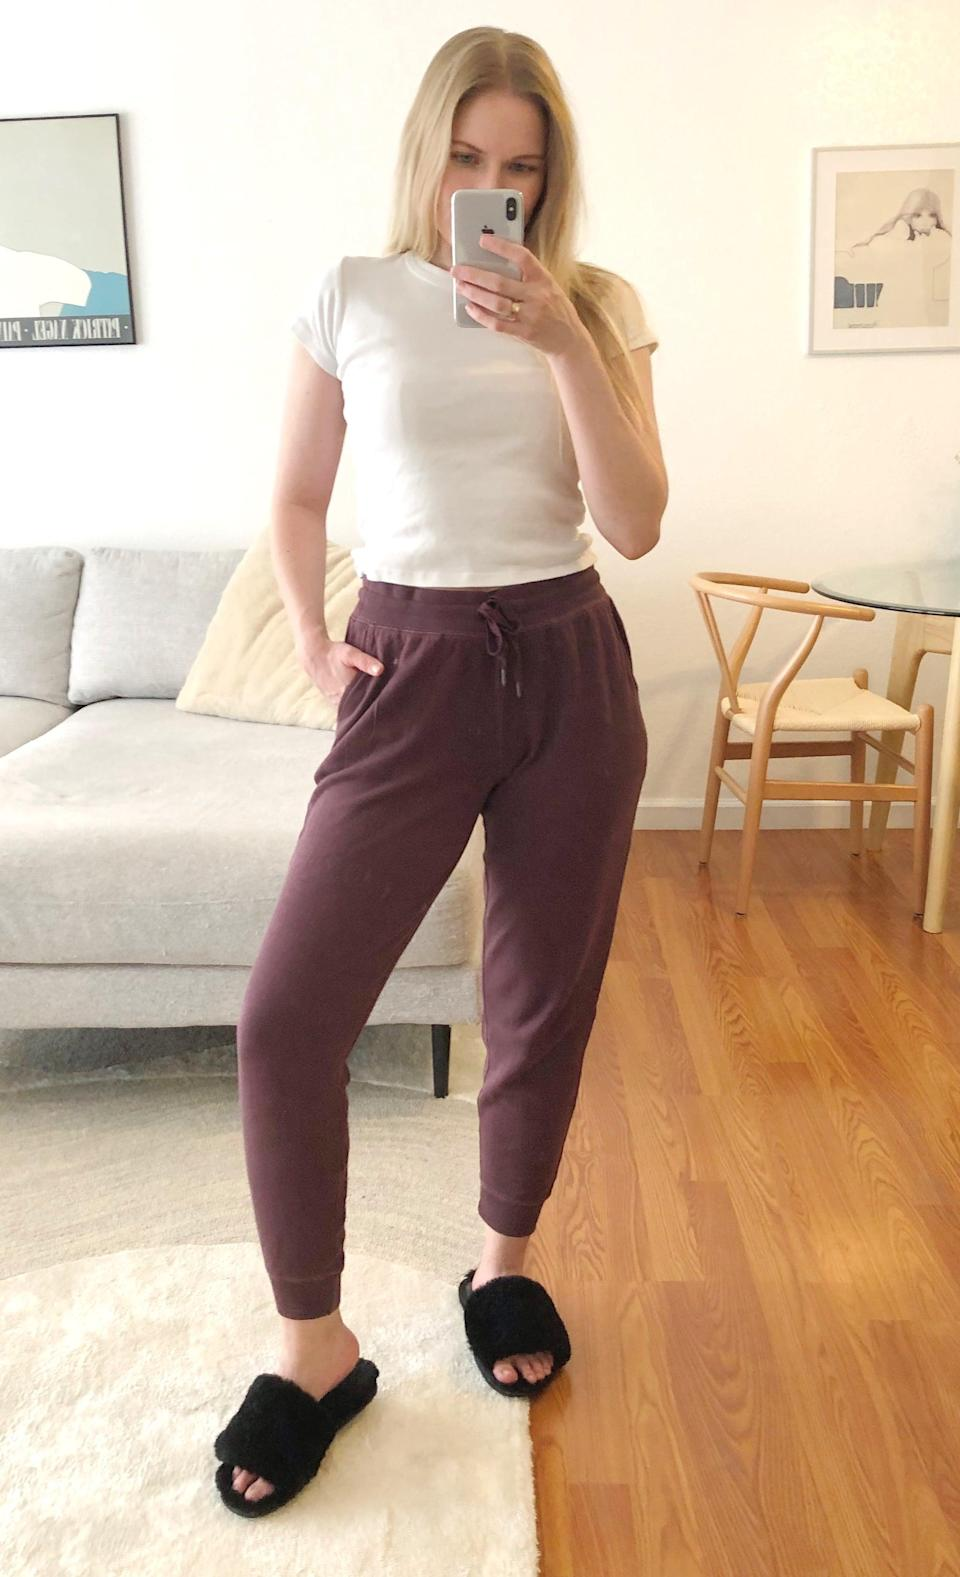 "<p><strong>The item:</strong> <span>Mid-Rise Tapered-Leg Jogger Pants</span> ($28, originally $30)</p> <p><strong>What our editor said: </strong>""If I have to run an errand to grab something at the store, they actually look cute with some sneakers and a denim jacket. I have them in a cute maroon shade, but they come in over 10 color choices and fun patterns."" - KJ<br> If you want to read more, here is the complete <a href=""https://www.popsugar.com/fashion/most-comfortable-joggers-from-old-navy-editor-review-47675011"" class=""link rapid-noclick-resp"" rel=""nofollow noopener"" target=""_blank"" data-ylk=""slk:review"">review</a>.</p>"